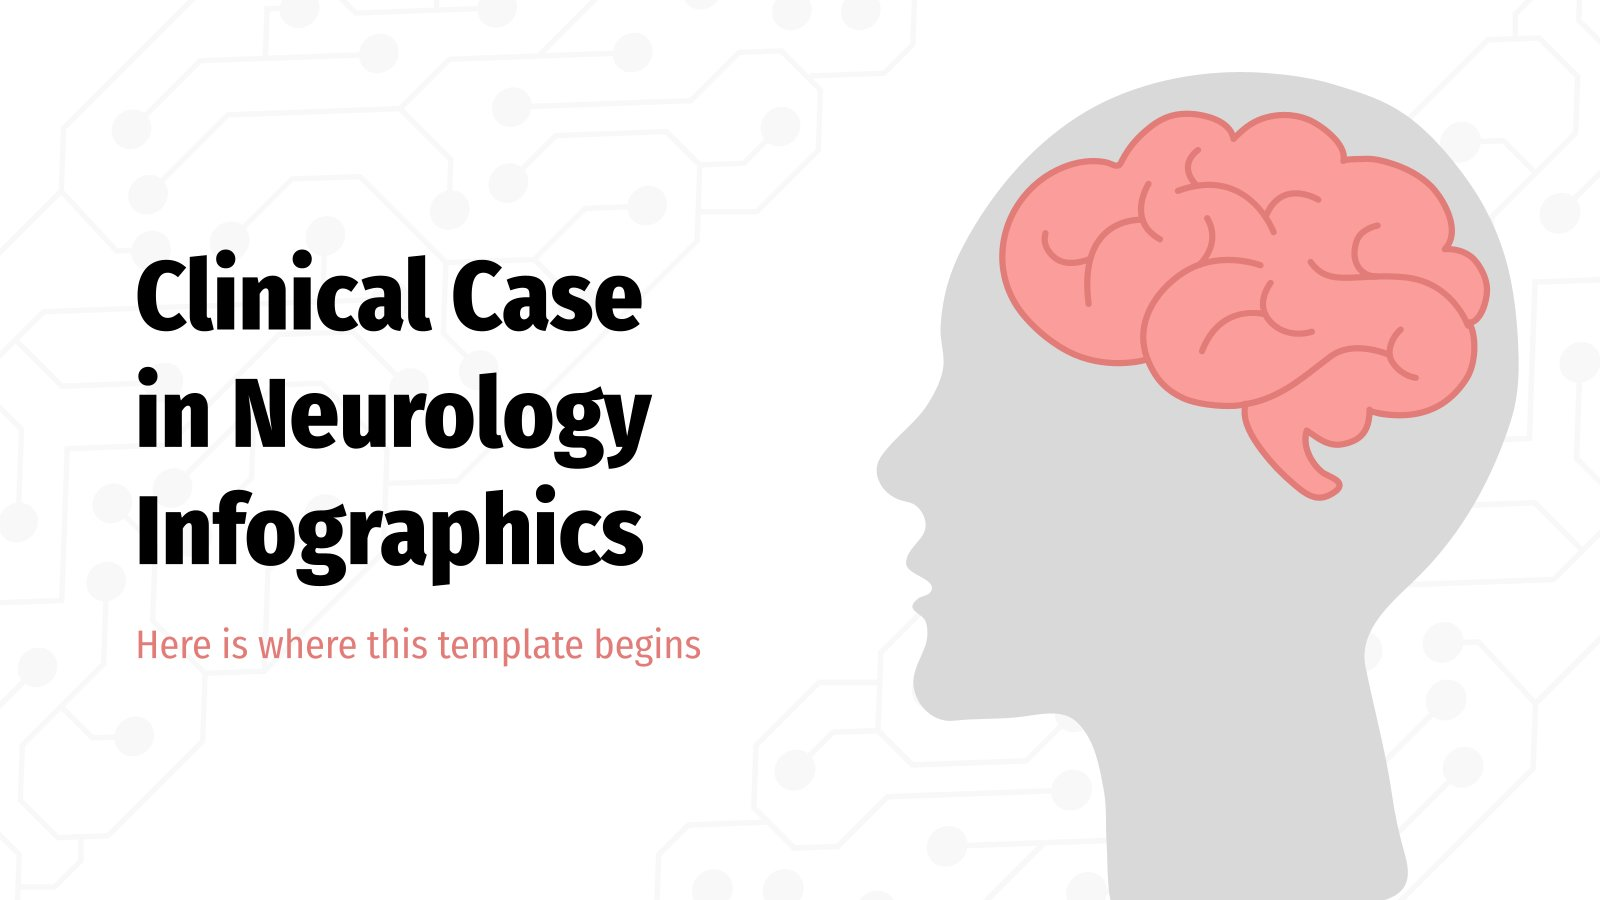 Clinical Case in Neurology Infographics presentation template